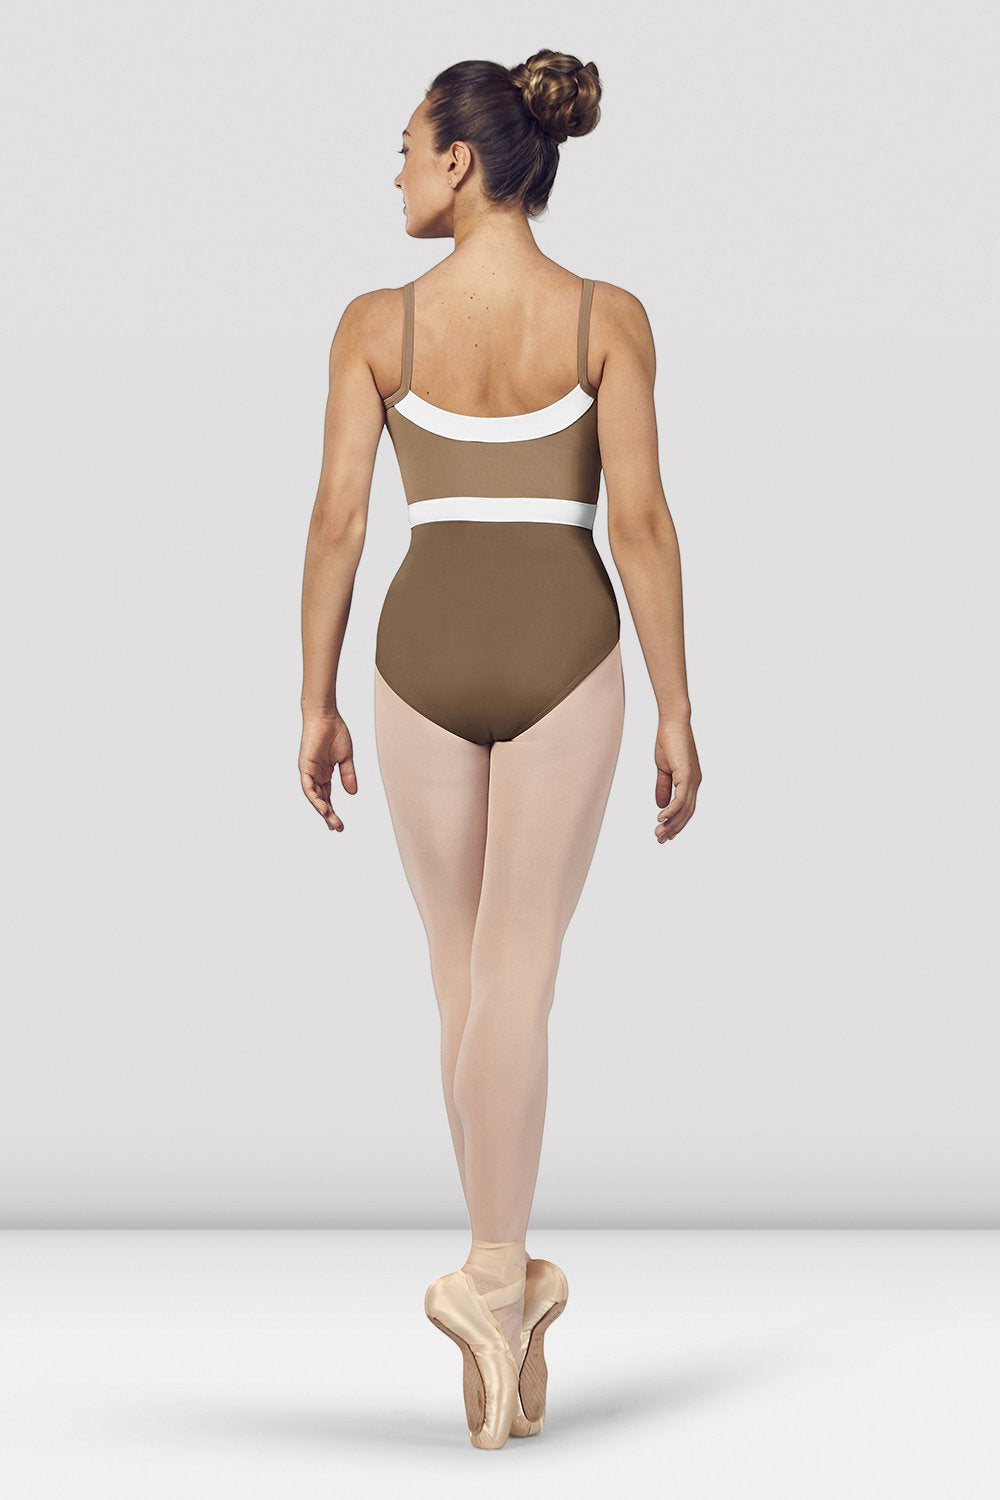 Praline Bloch Ladies Amora Camisole Leotard on female model en pointe in fifth position facing back